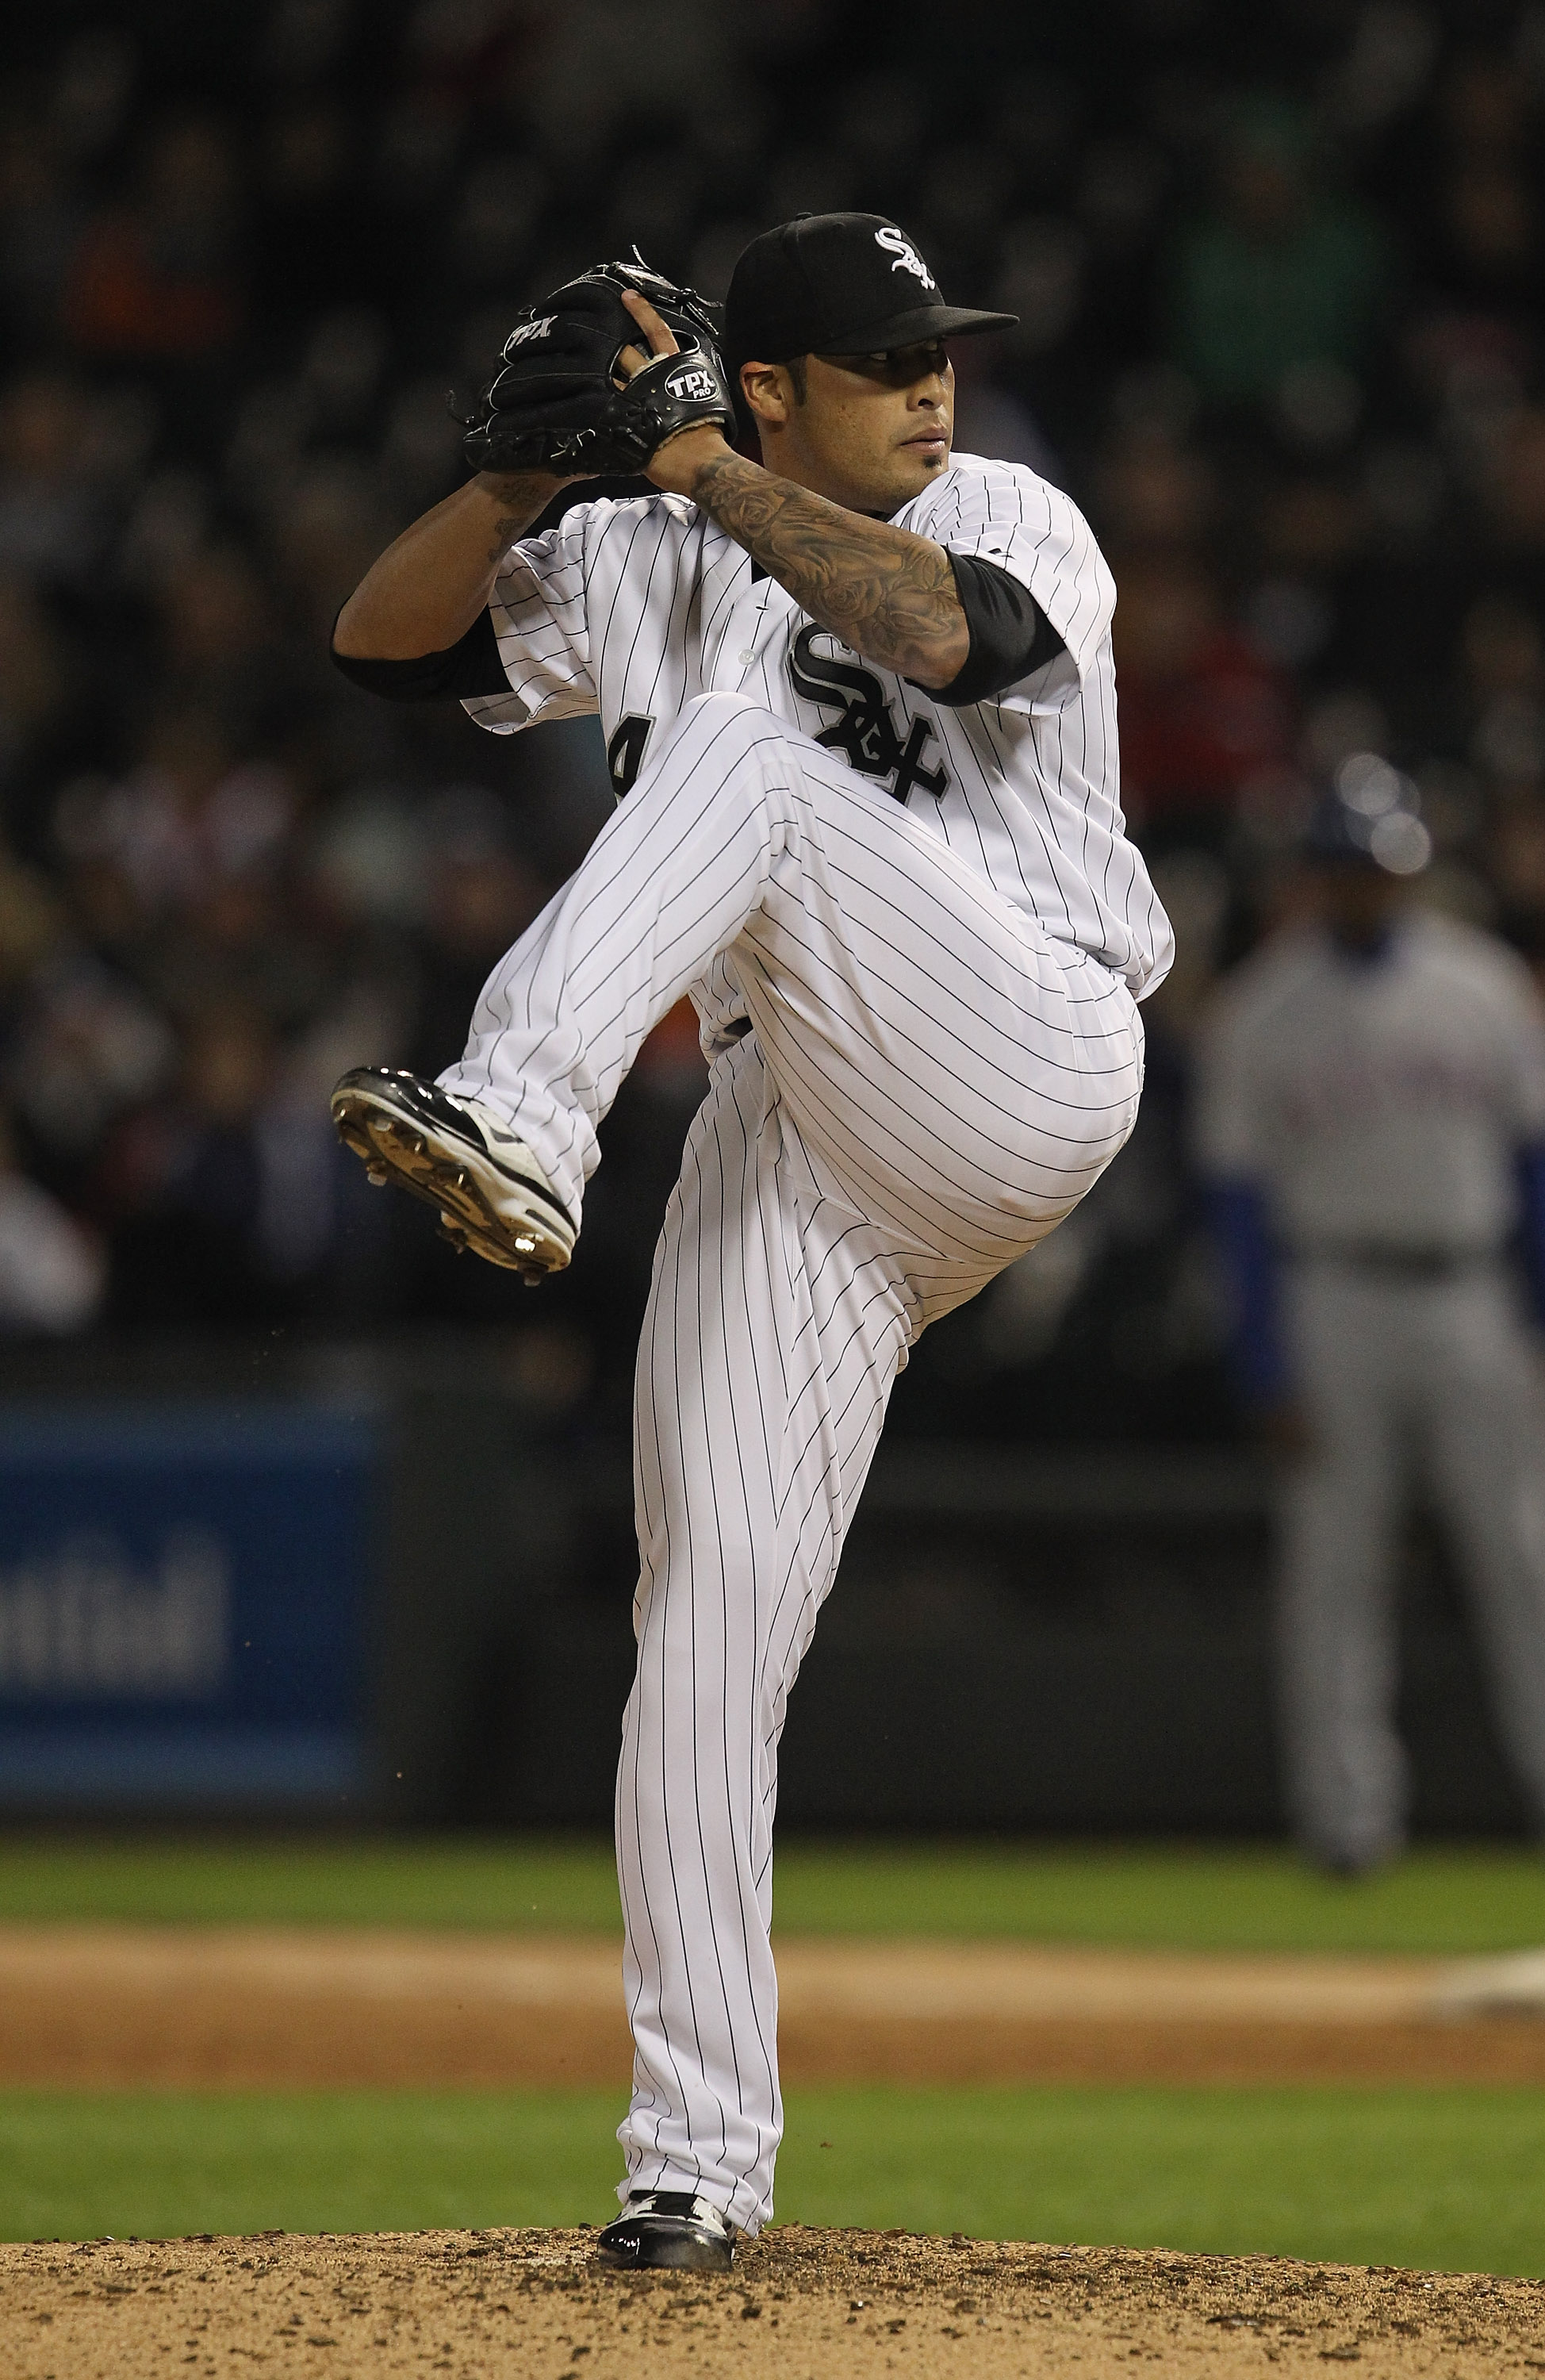 CHICAGO, IL - MAY 17: Sergio Santos #46 of the Chicago White Sox pitches against the Texas Rangers at U.S. Cellular Field on May 17, 2011 in Chicago, Illinois. The White Sox defeated the Rangers 4-3. (Photo by Jonathan Daniel/Getty Images)